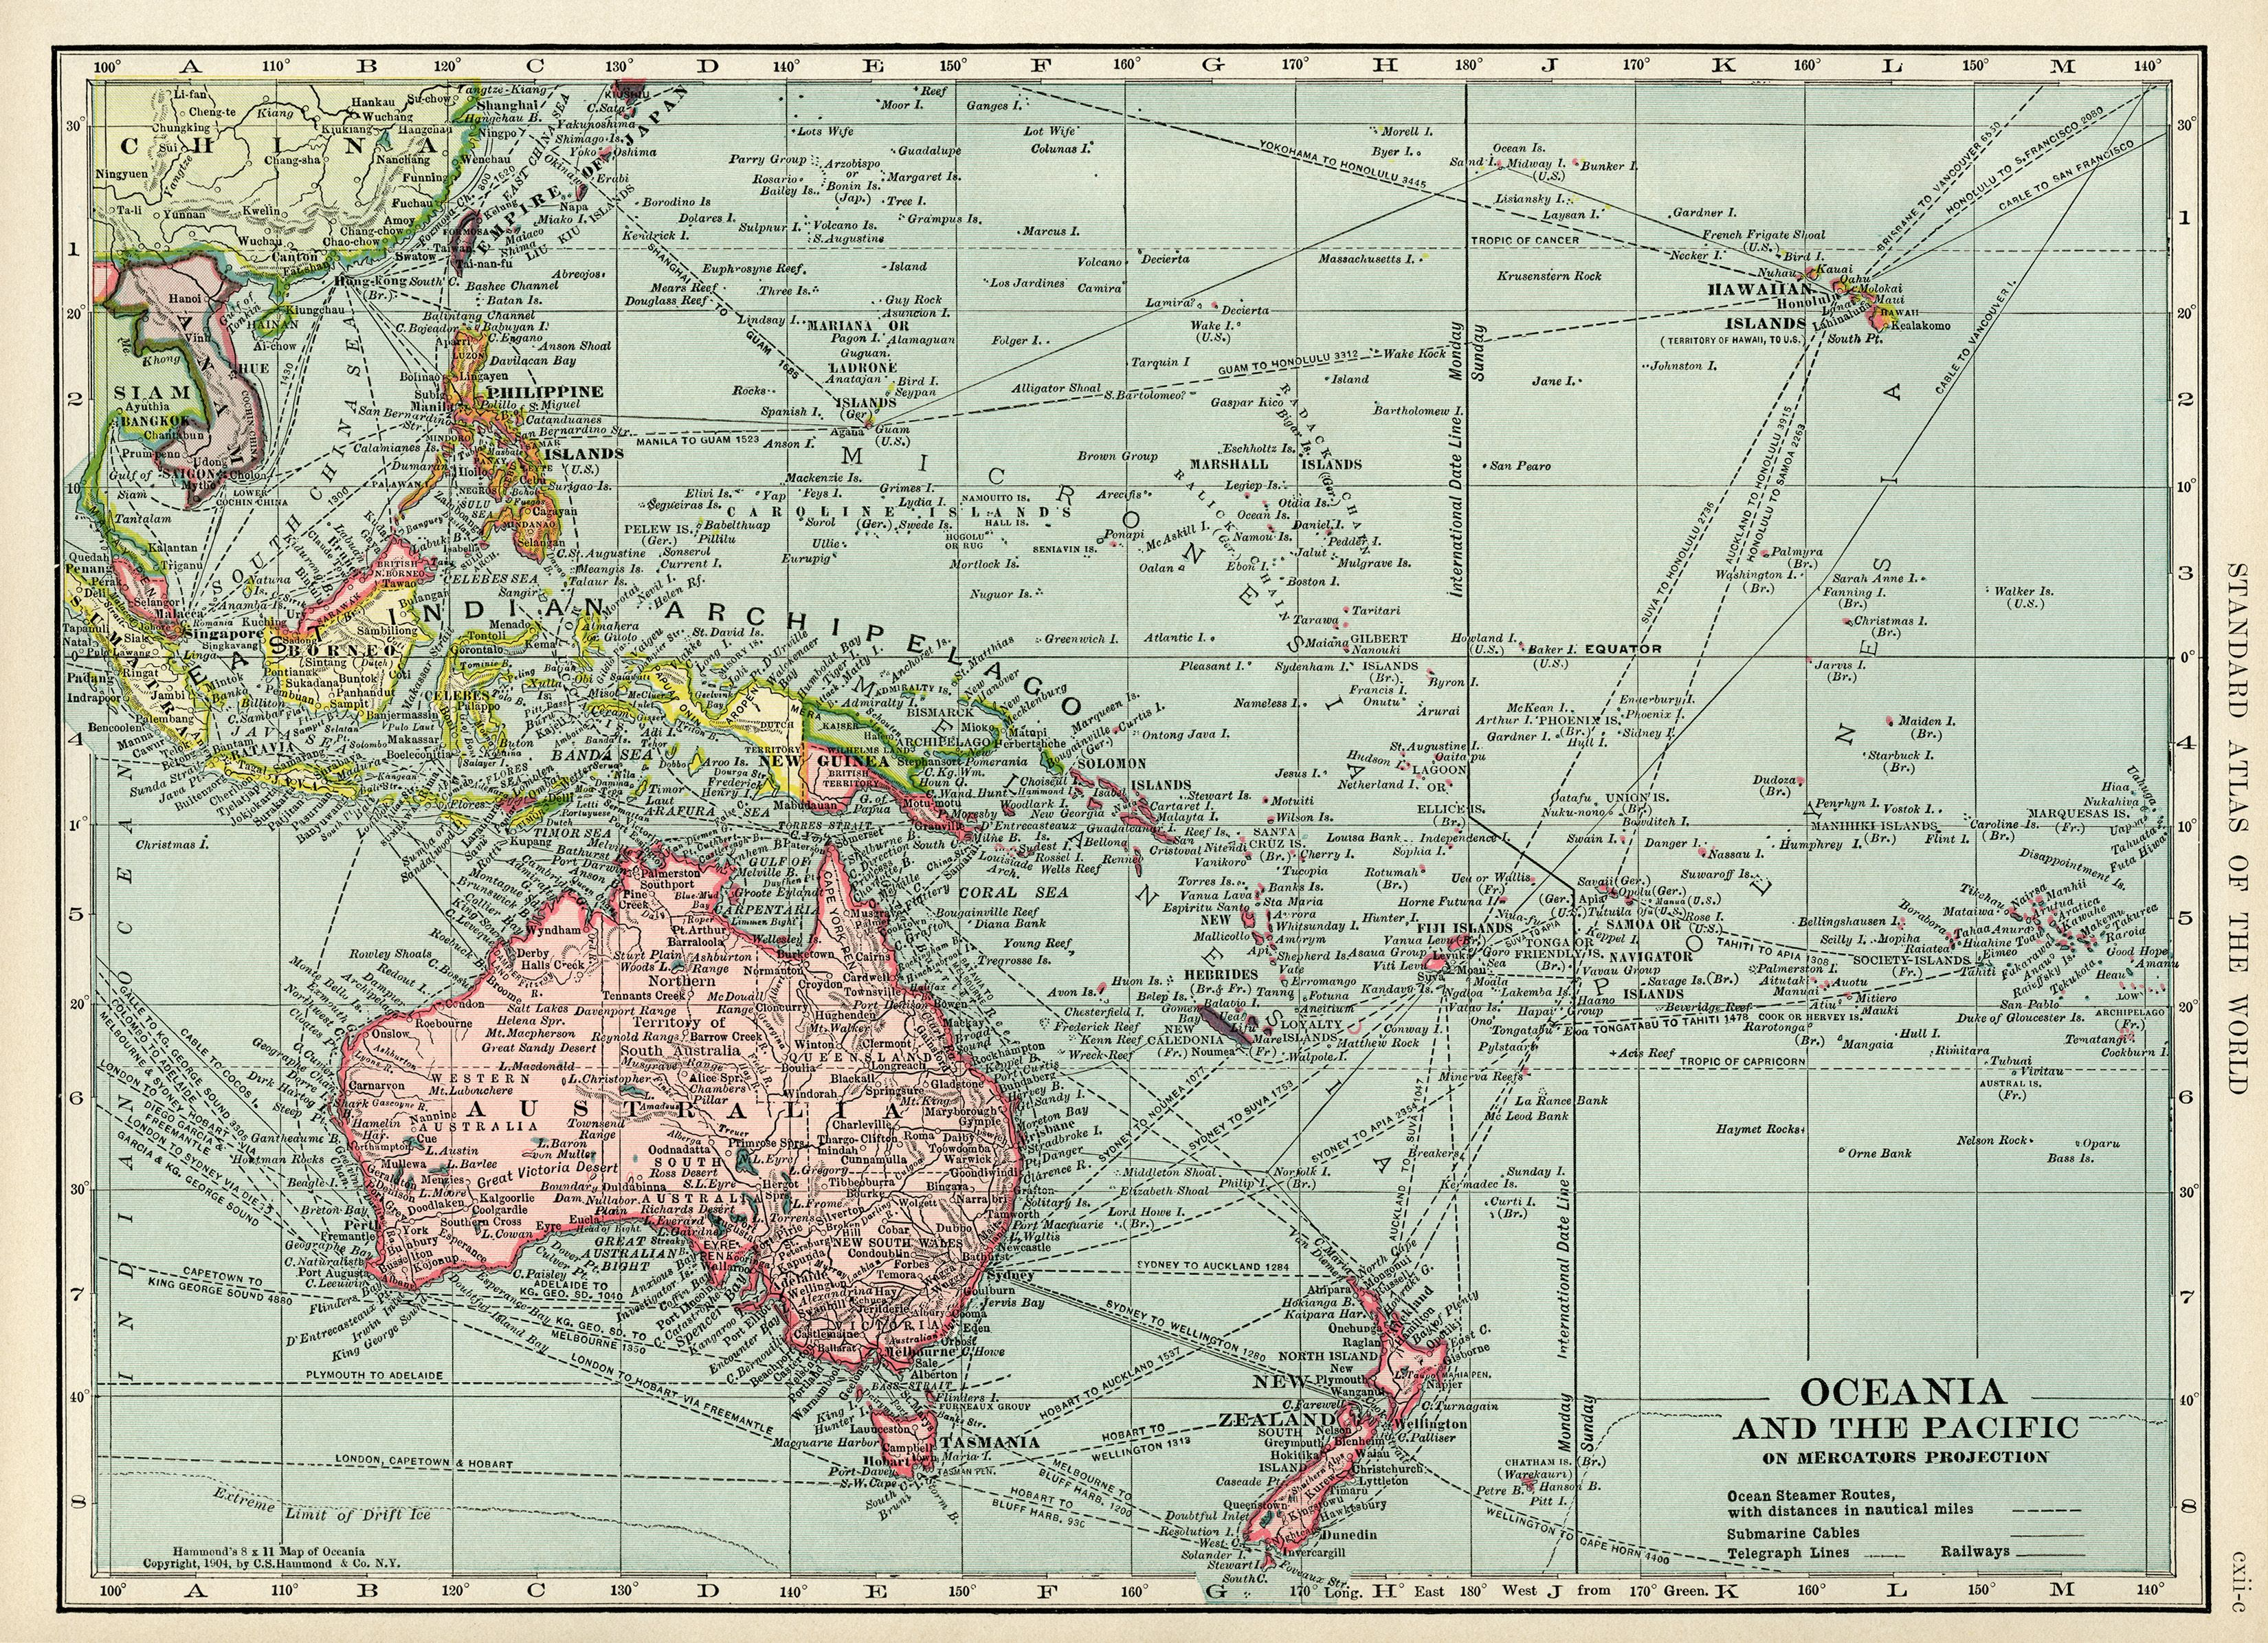 Oceania And Pacific Map Vintage Download Antique C S Hammond Of Ocean Islands